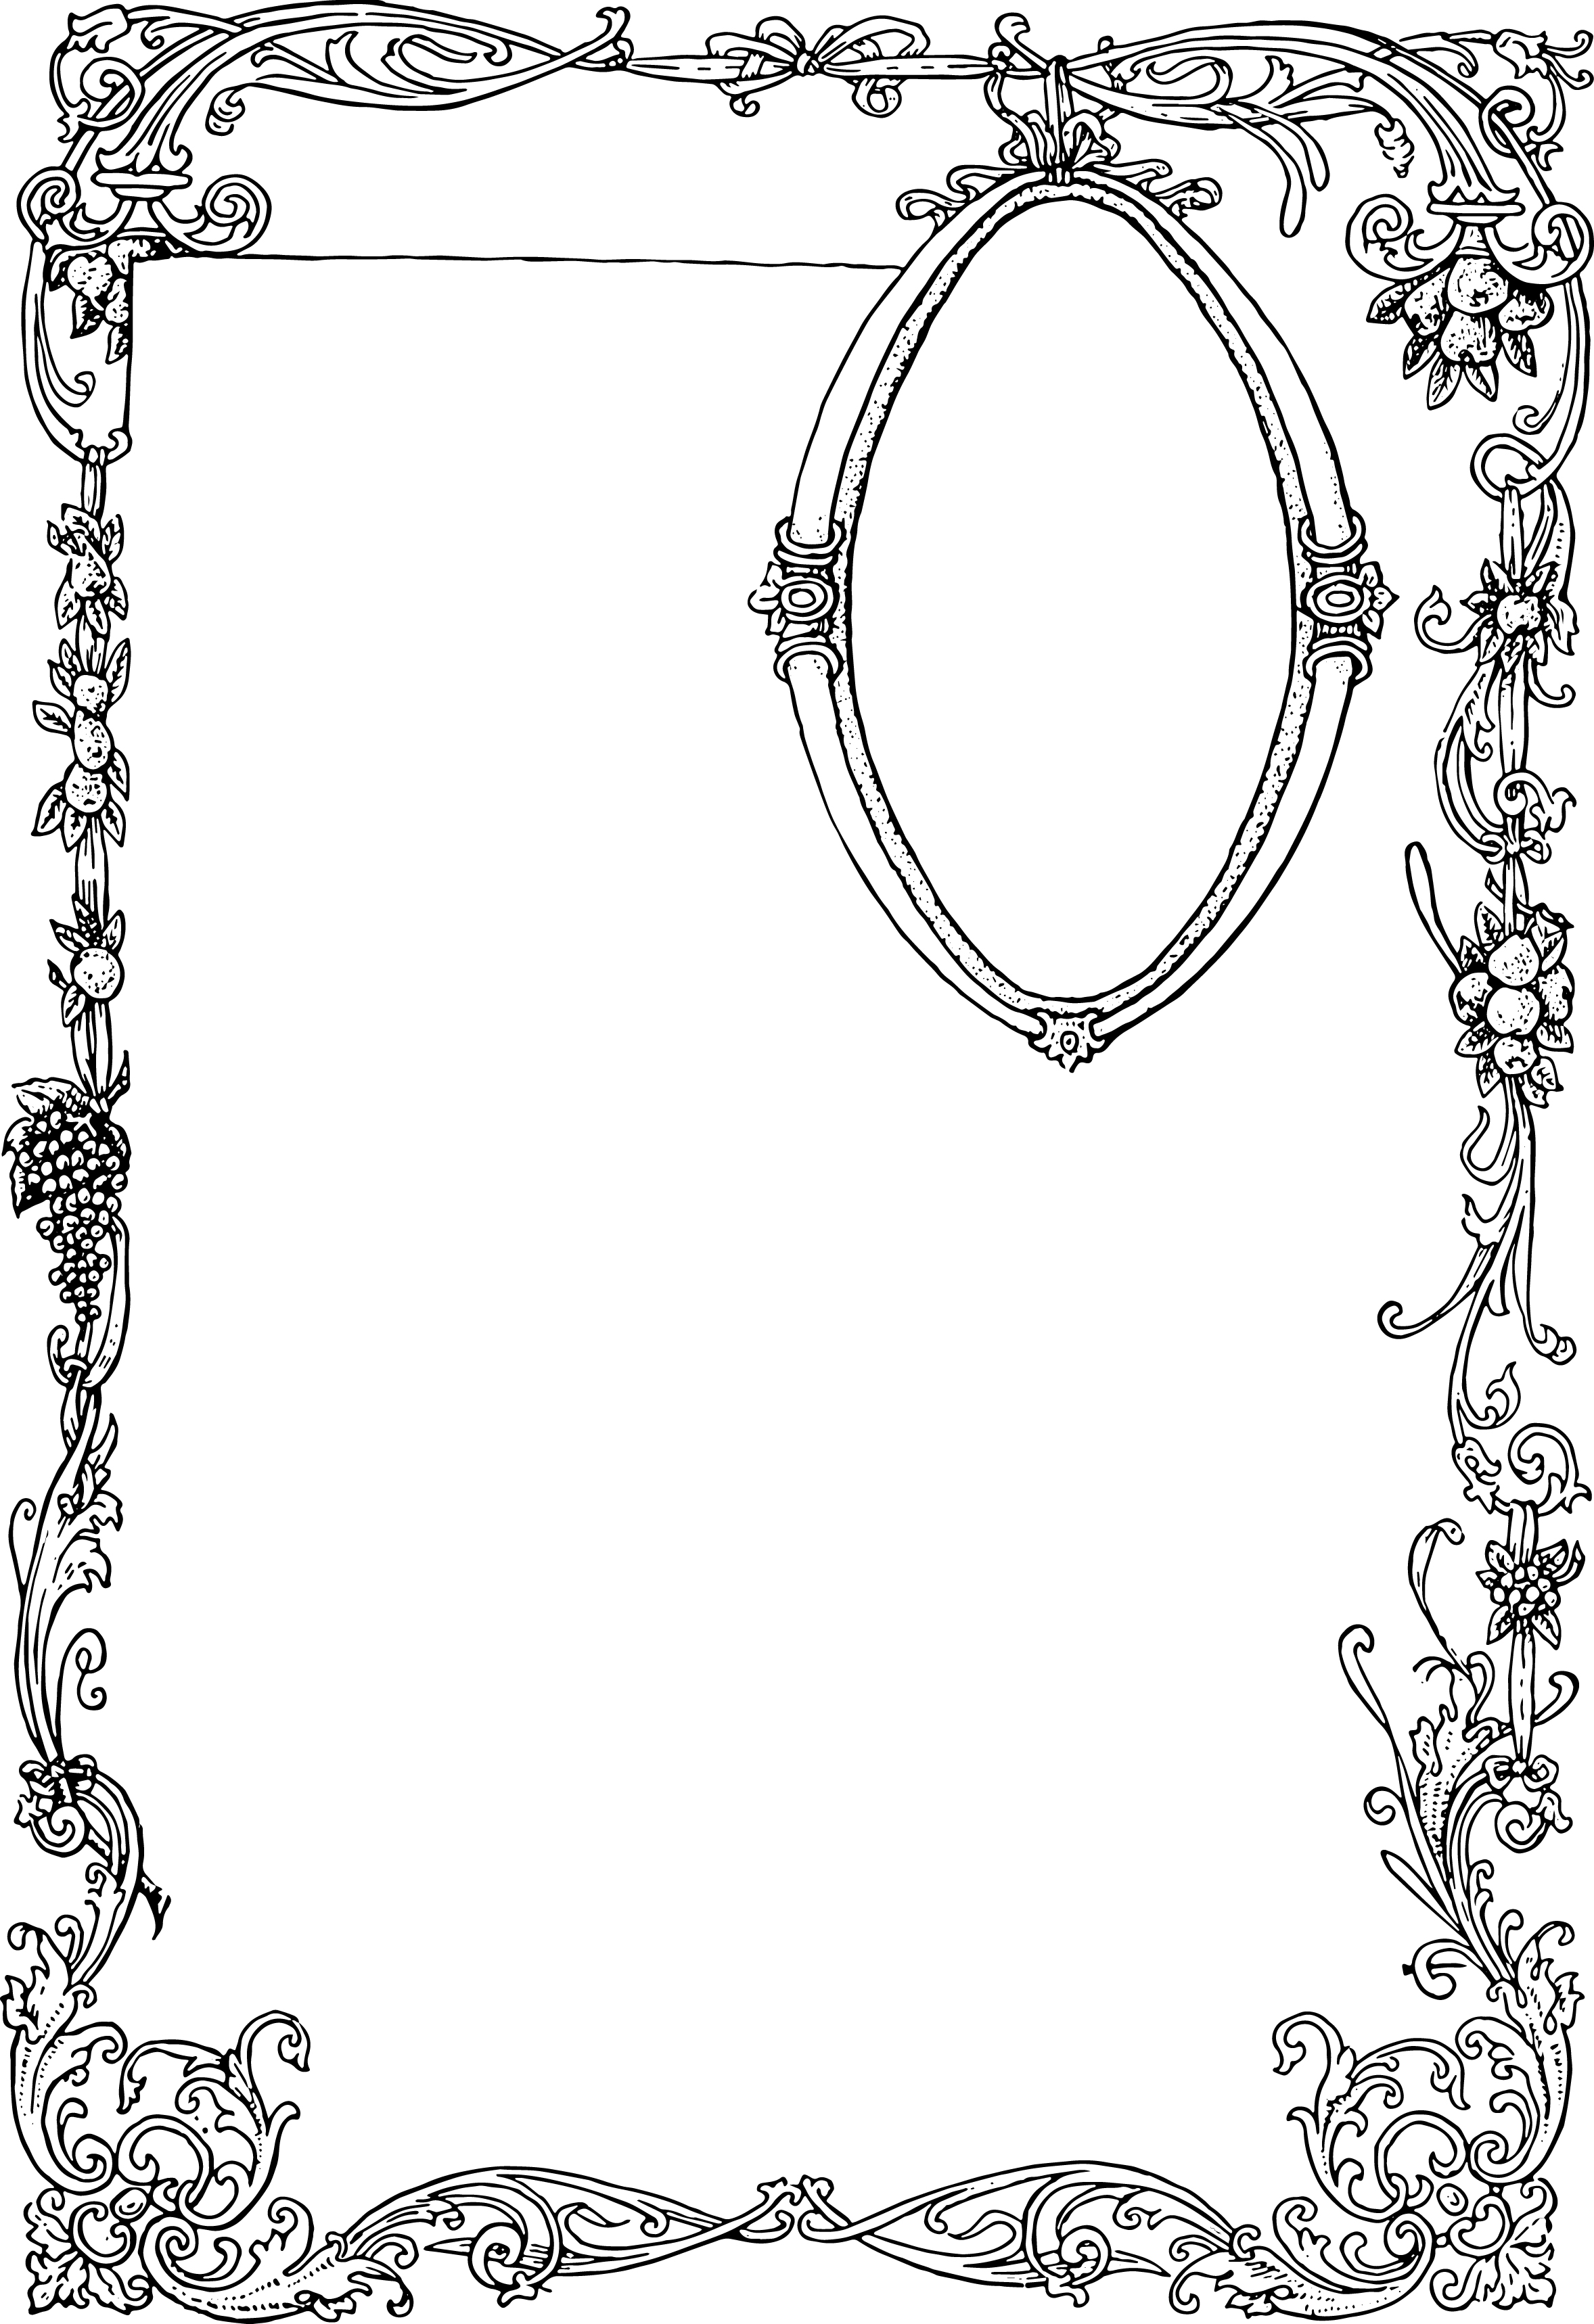 Stunning Free Vector Art - Ornate Border and Frame | Oh So Nifty ...